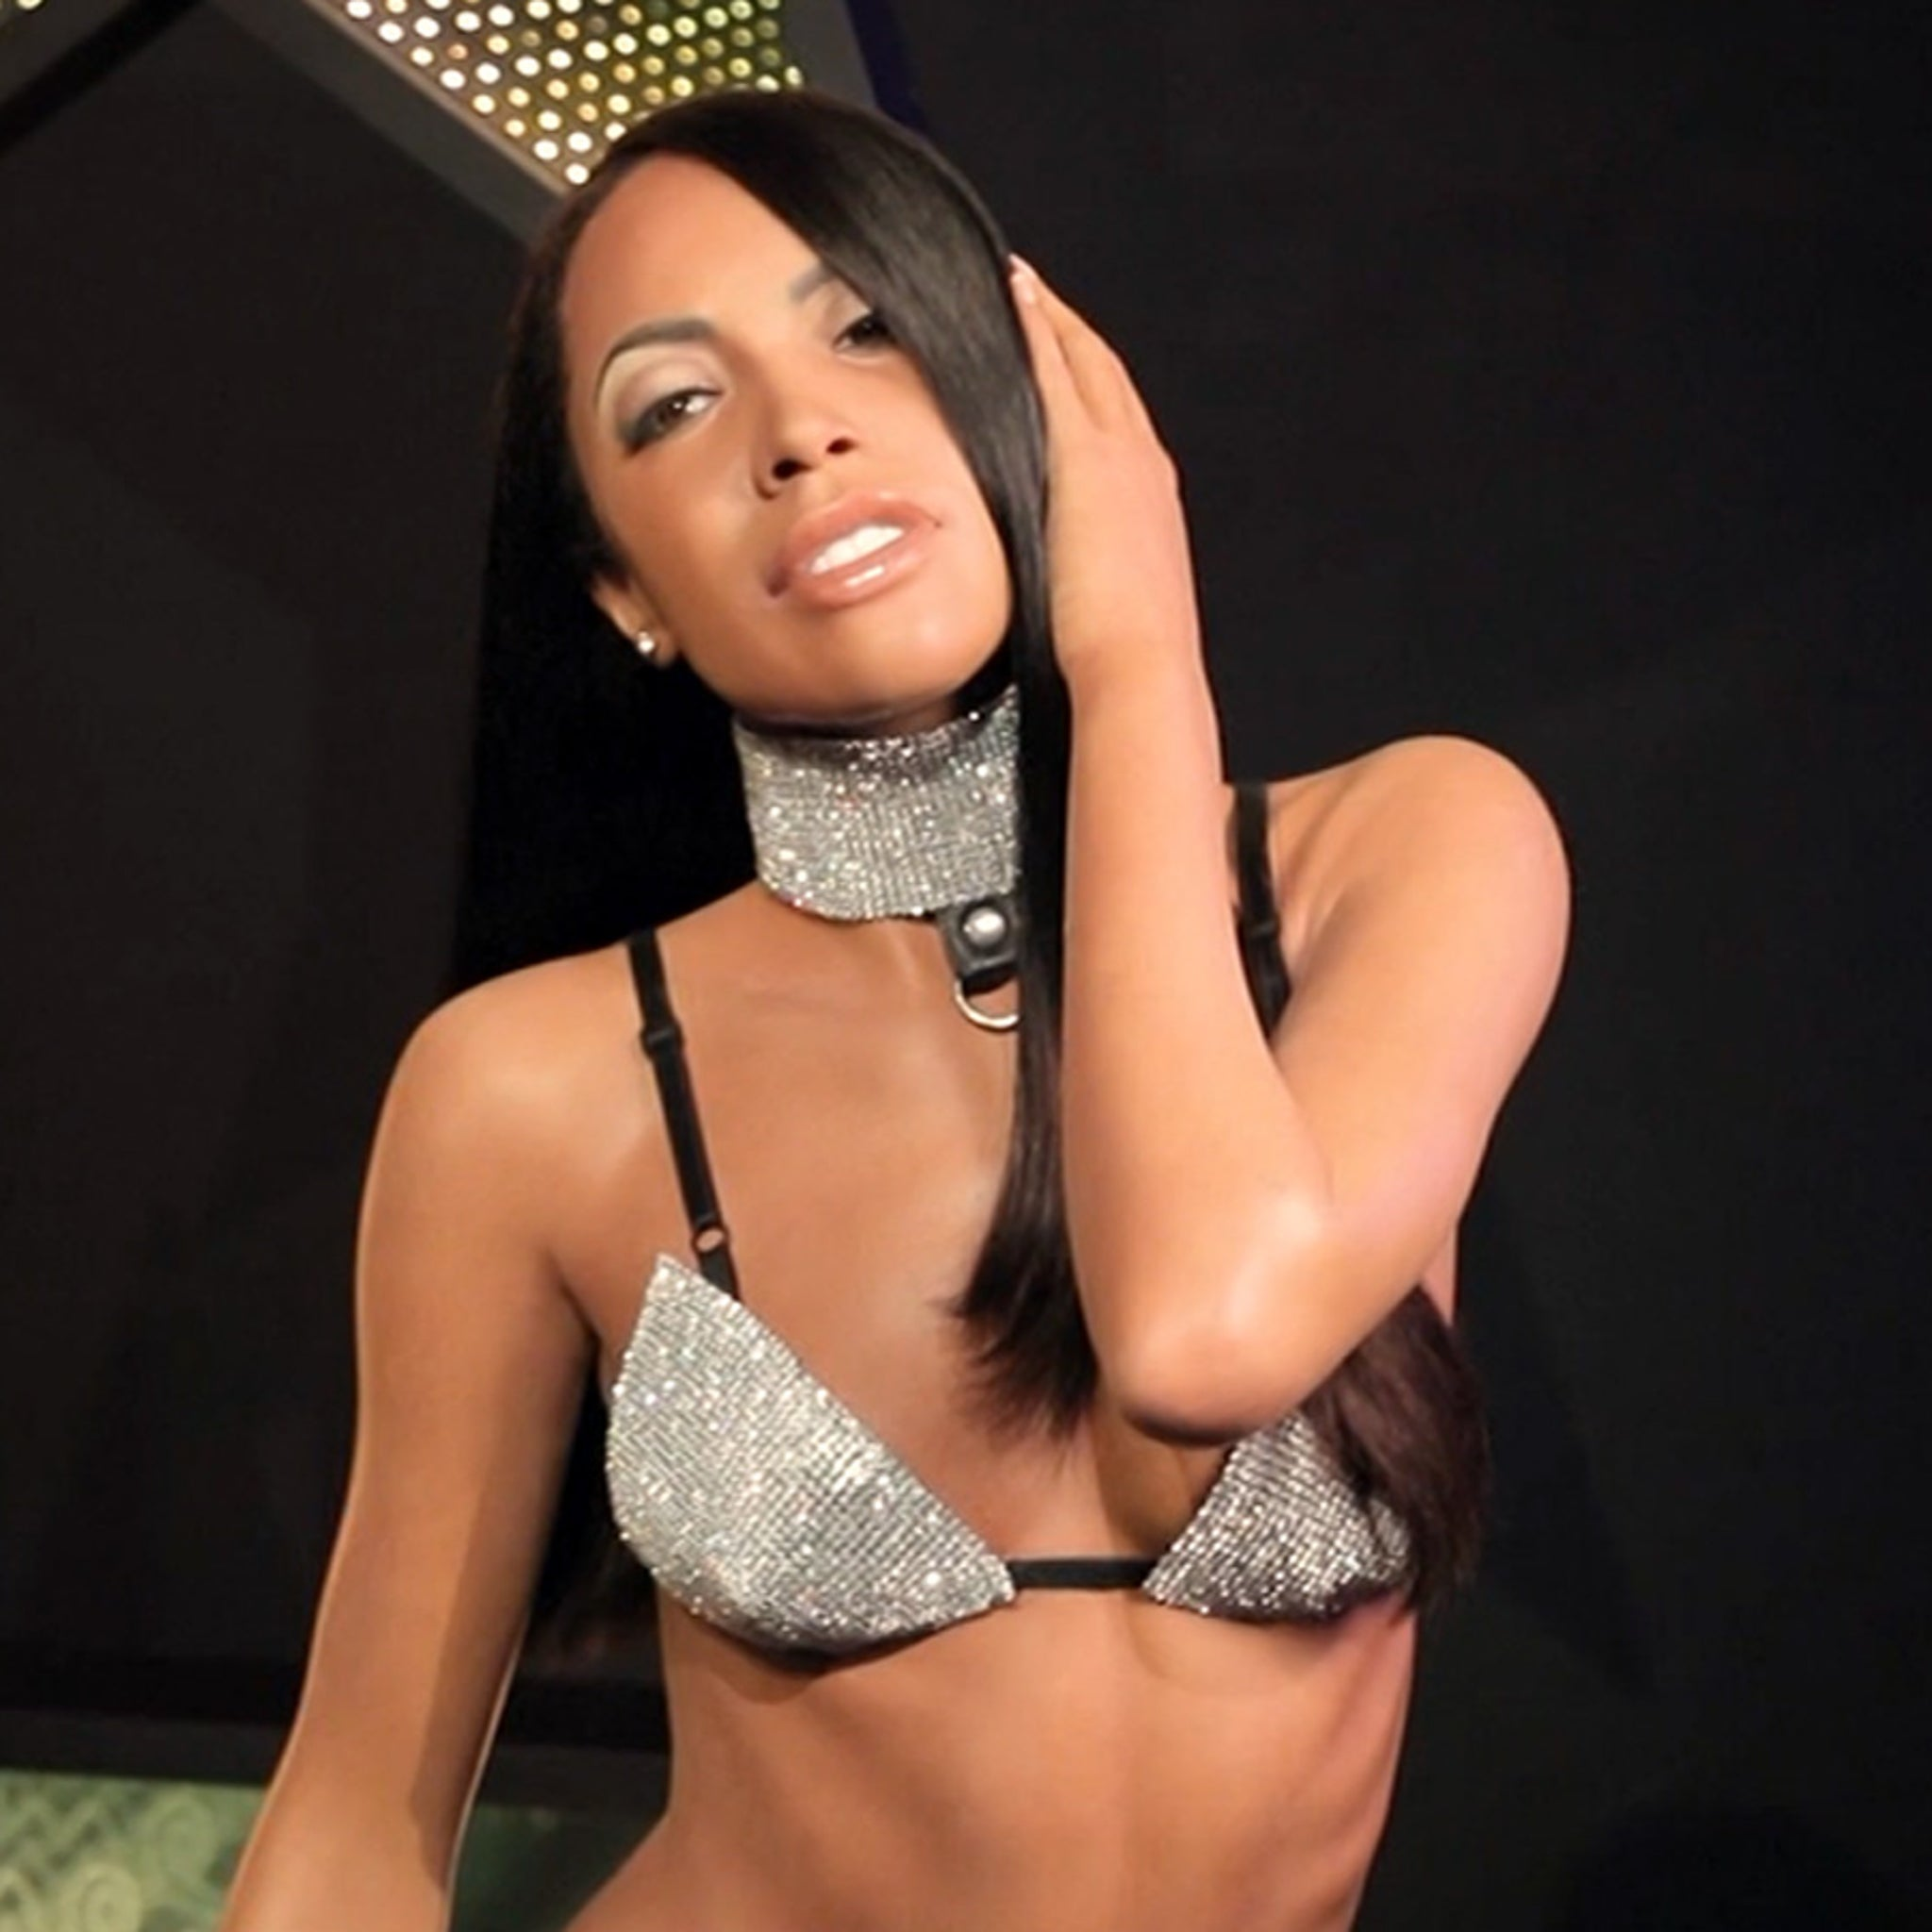 Aaliyah Immortalized With New Wax Figure at Madame Tussauds